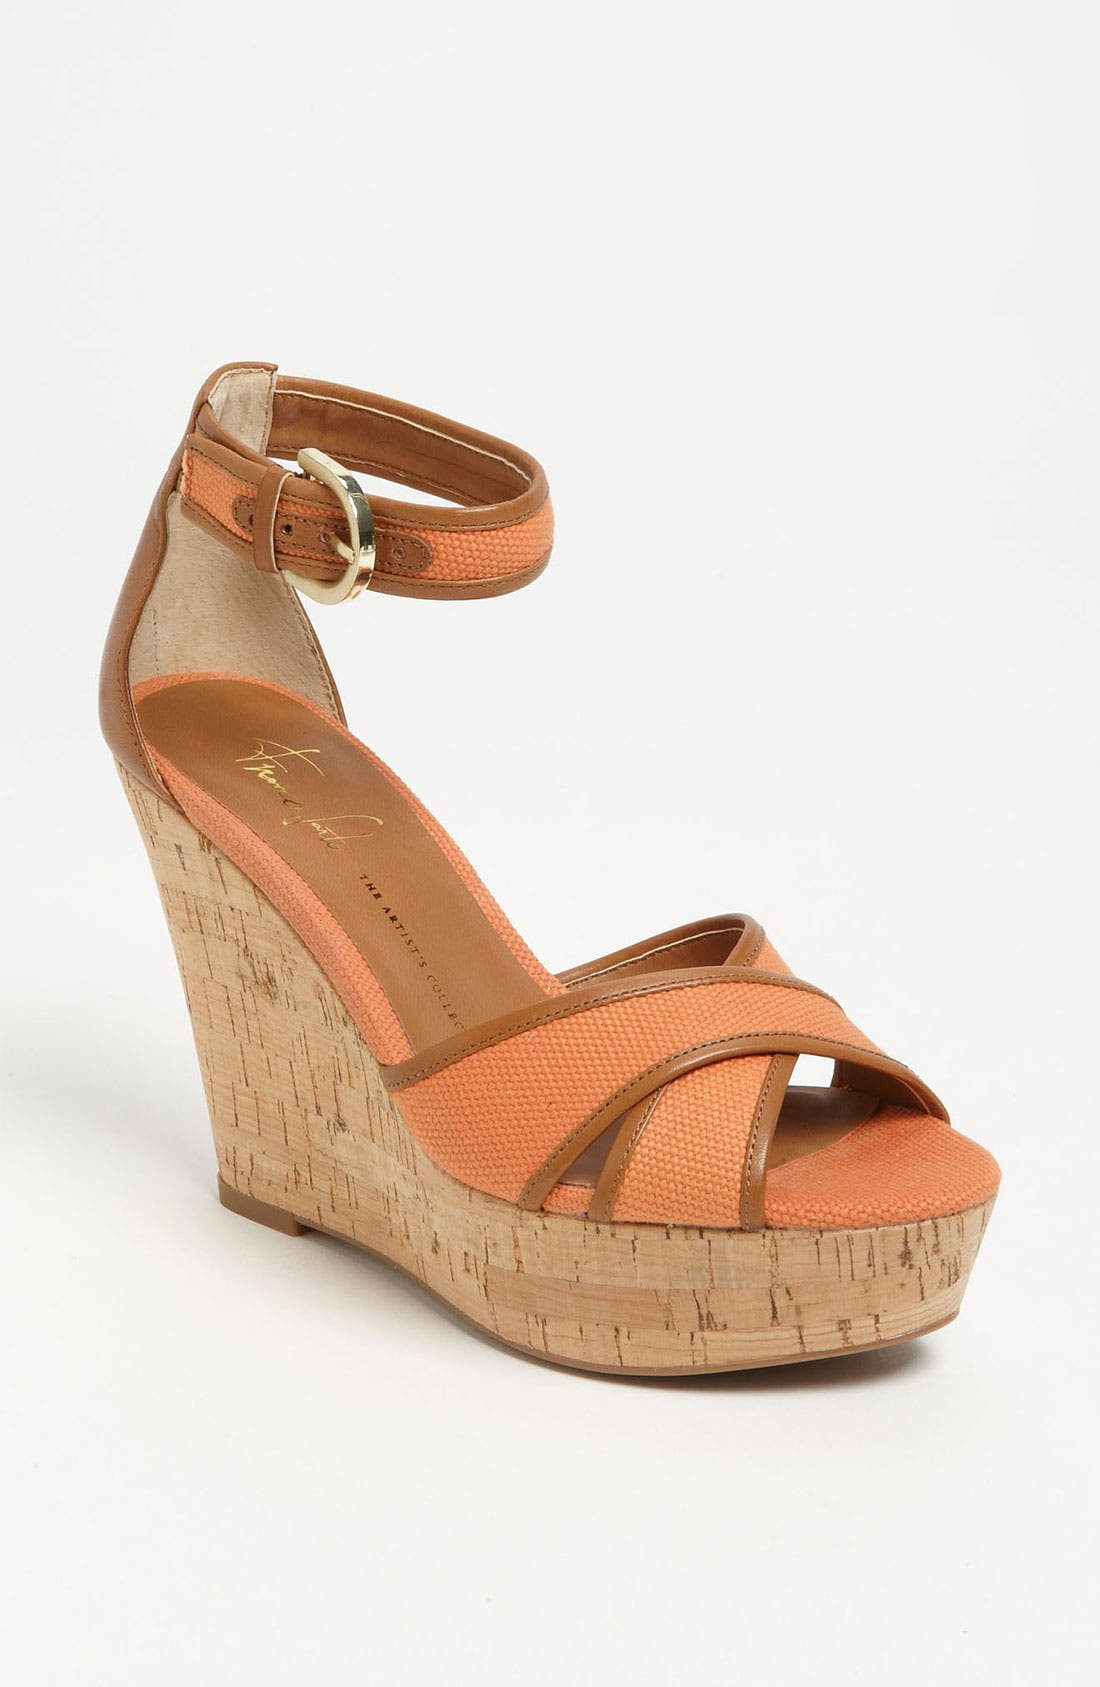 Main Image - Franco Sarto 'Raina' Wedge